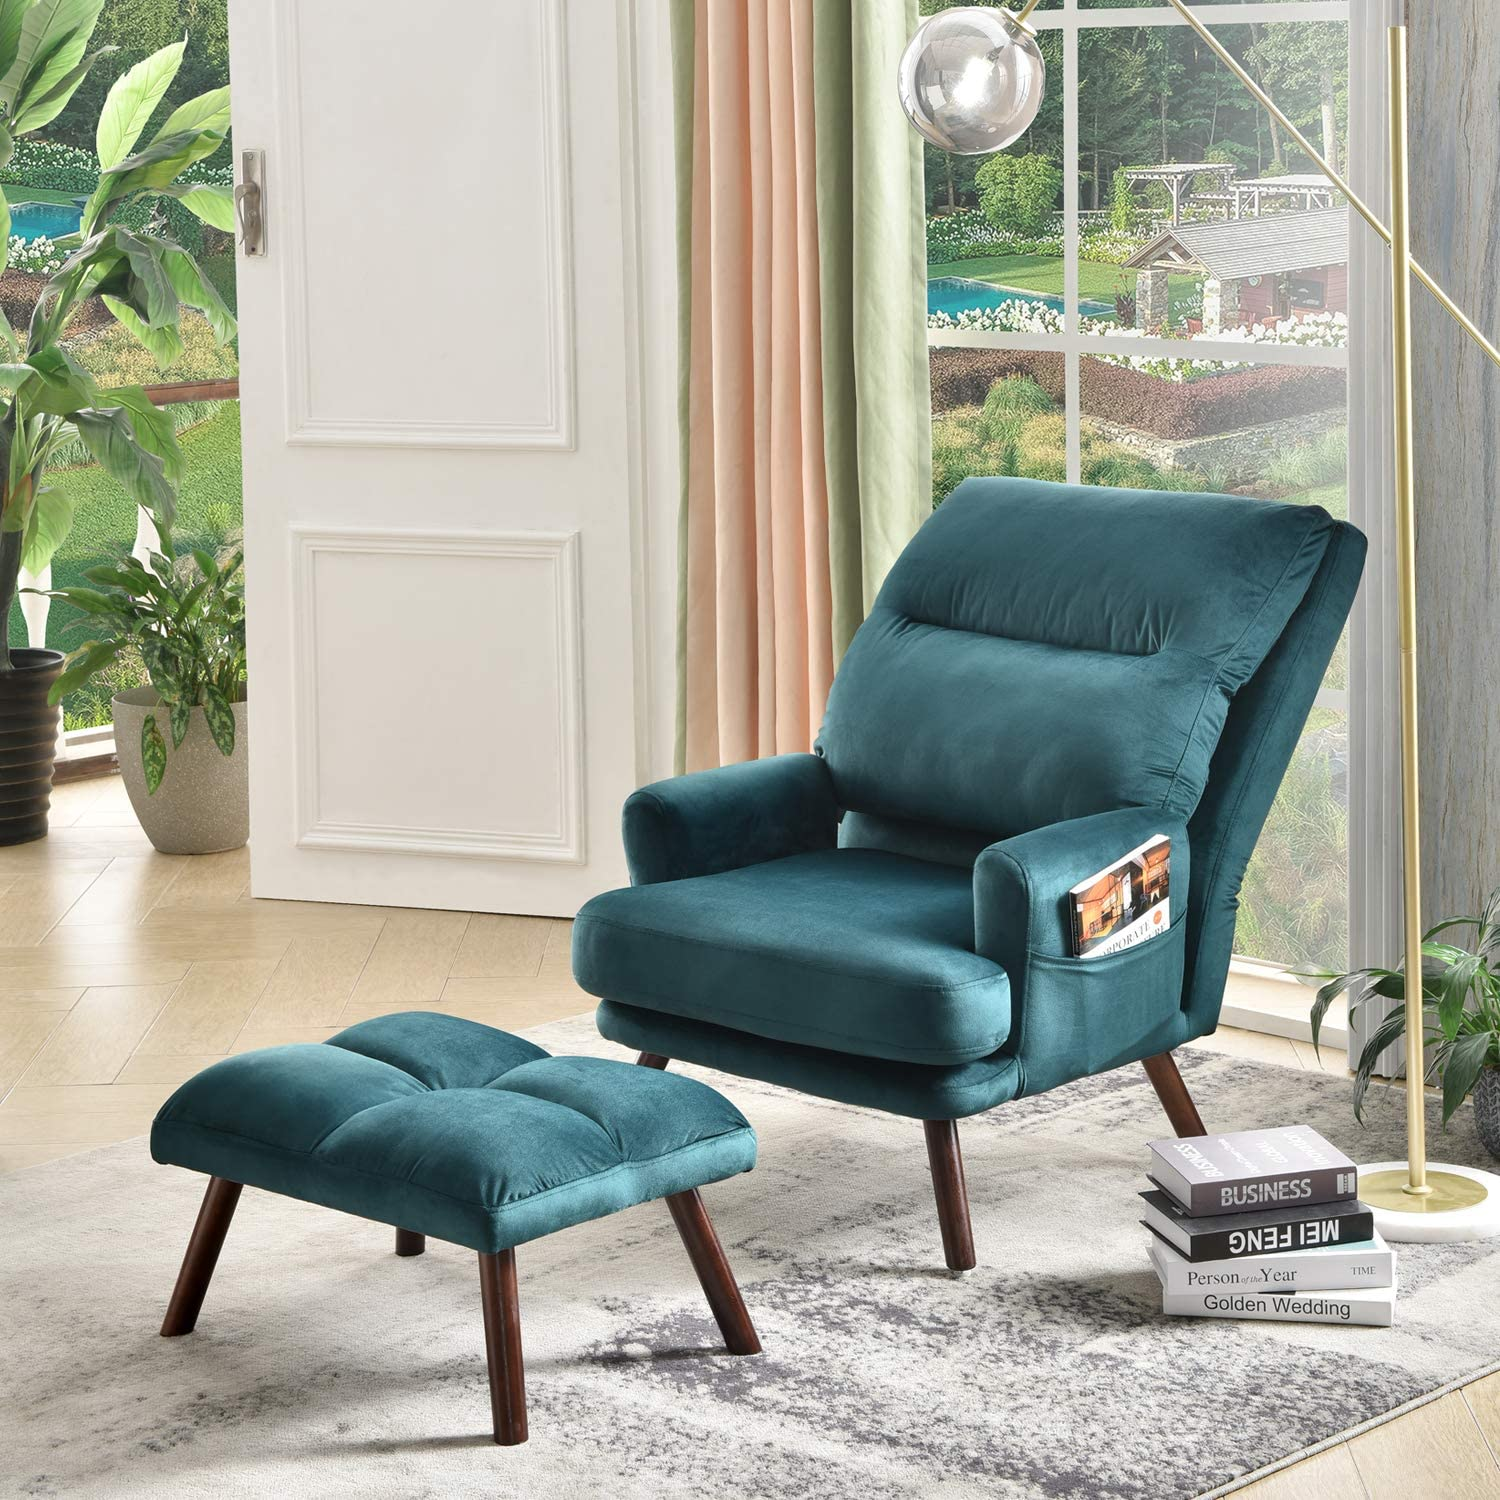 OVIOS Recliner Chair with Ottoman,Velvet wingback Chair,Mid Century Reading  Chair for Living Room,Adjustable Accent Chair,Sleeper,Lounge,Office